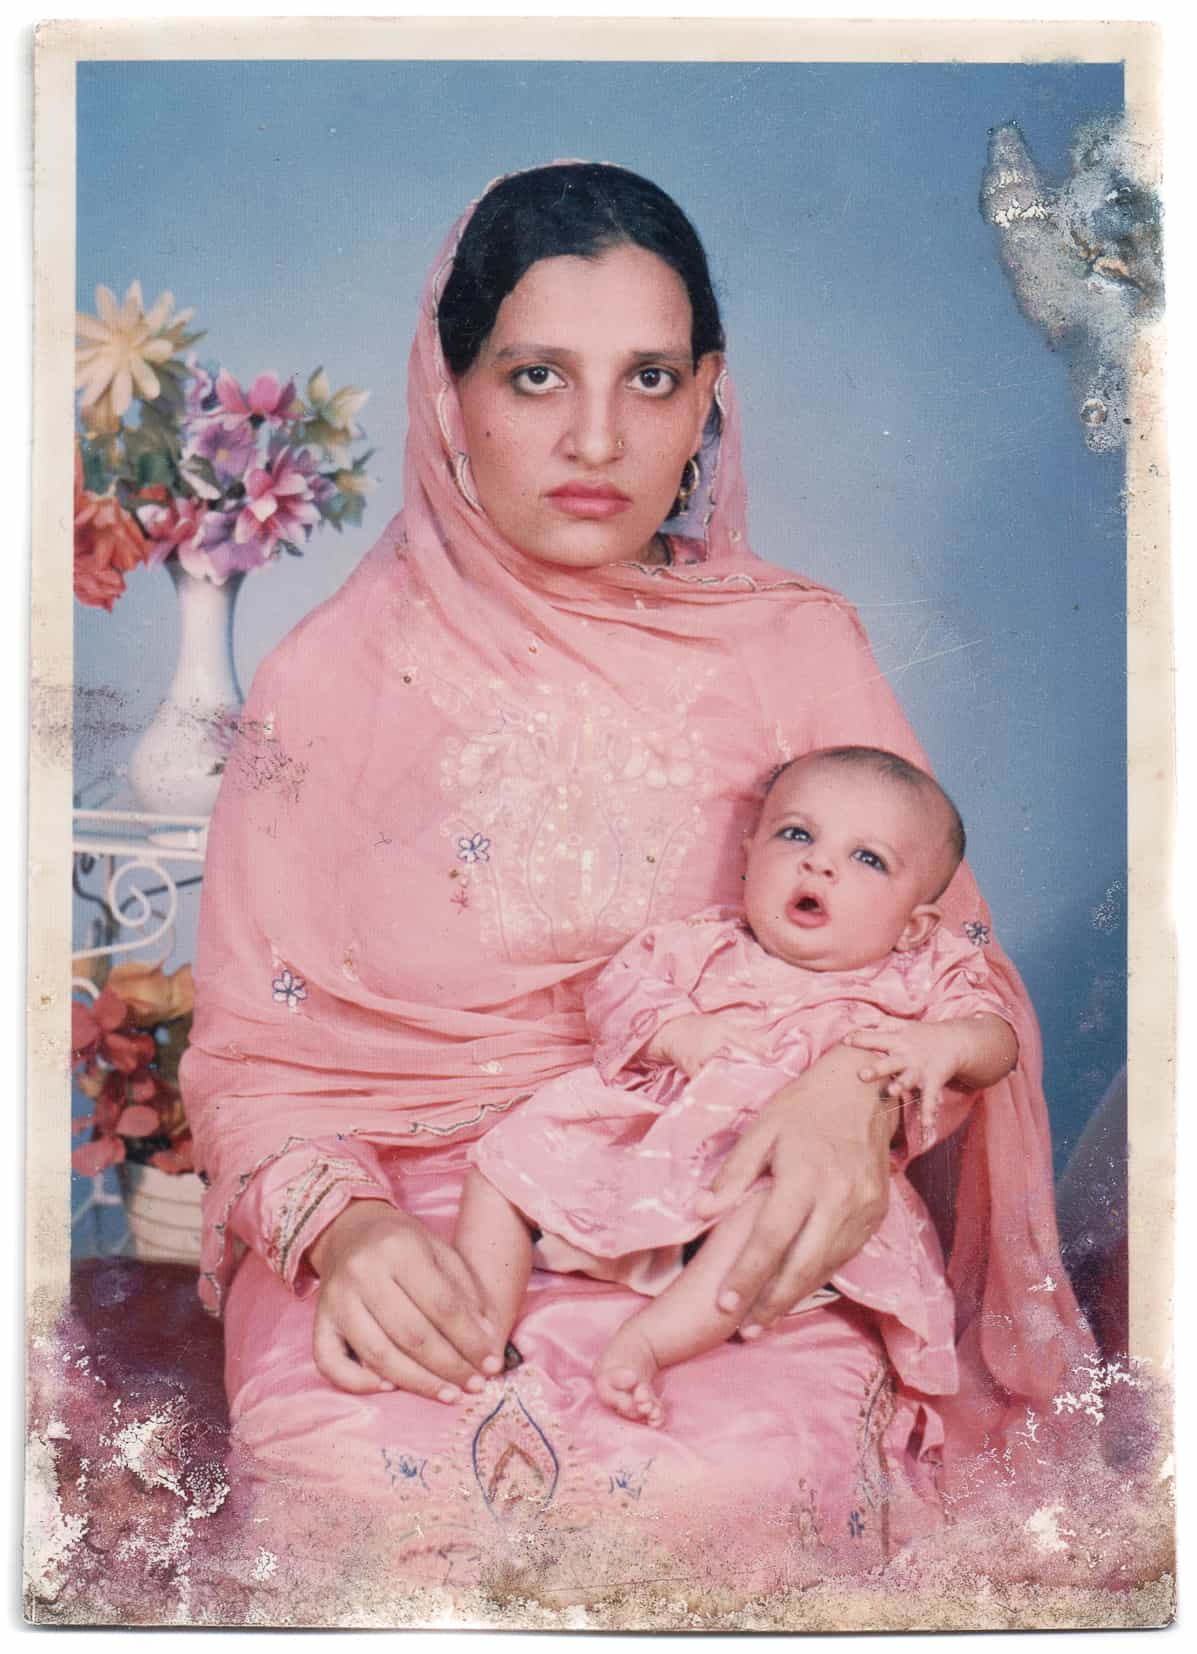 This is me with my daughter who now is 27 years old. She has 2 boys, she is married to her cousin. She is very happy in her life God has willed it. May Allah protect her from all the evil eyes* she is a really good daughter to me,  she looks after me very well.